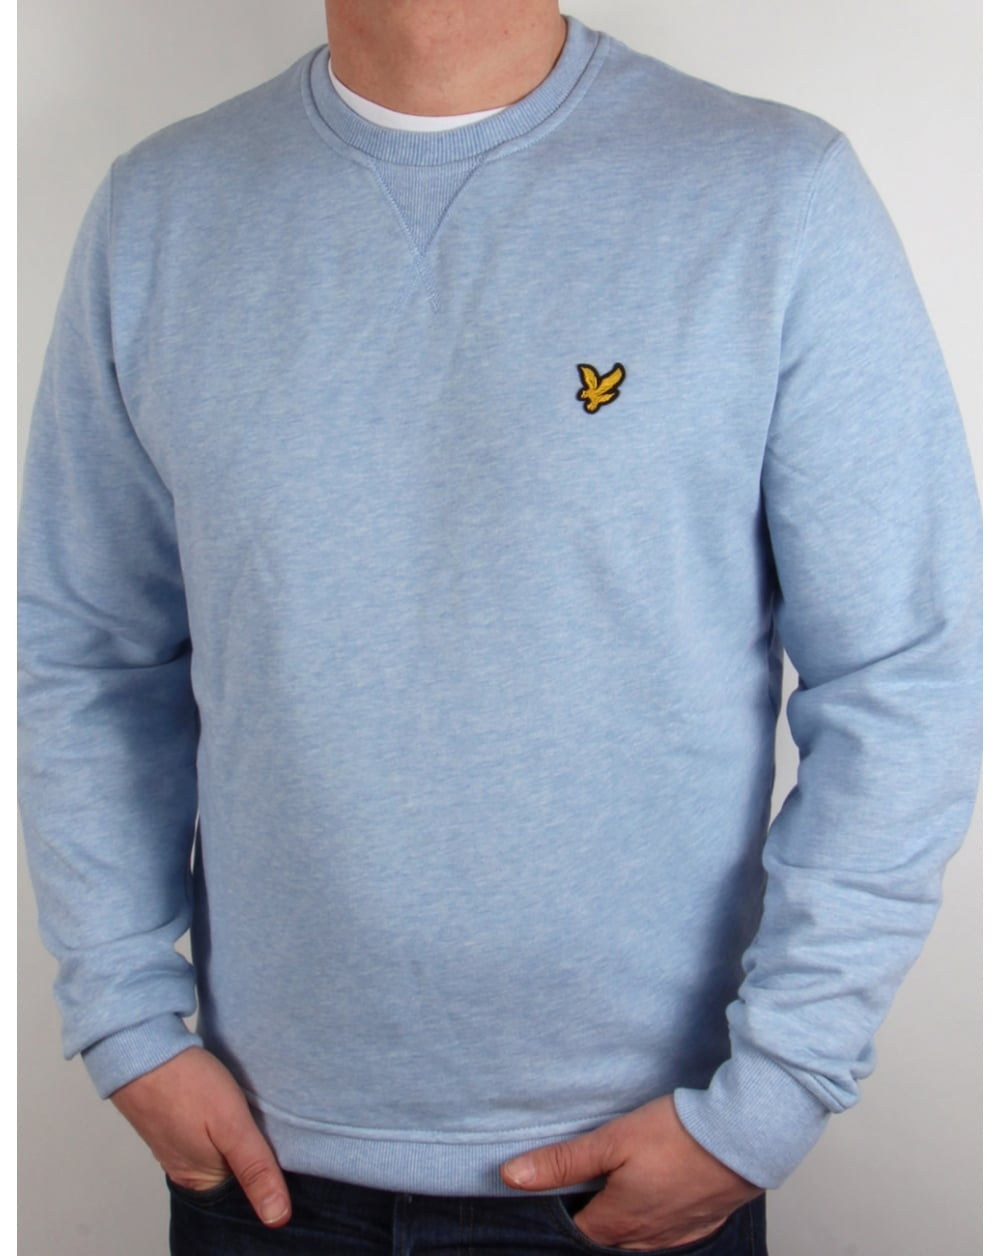 lyle and scott crew neck sweatshirt blue marl jumper sweater round. Black Bedroom Furniture Sets. Home Design Ideas